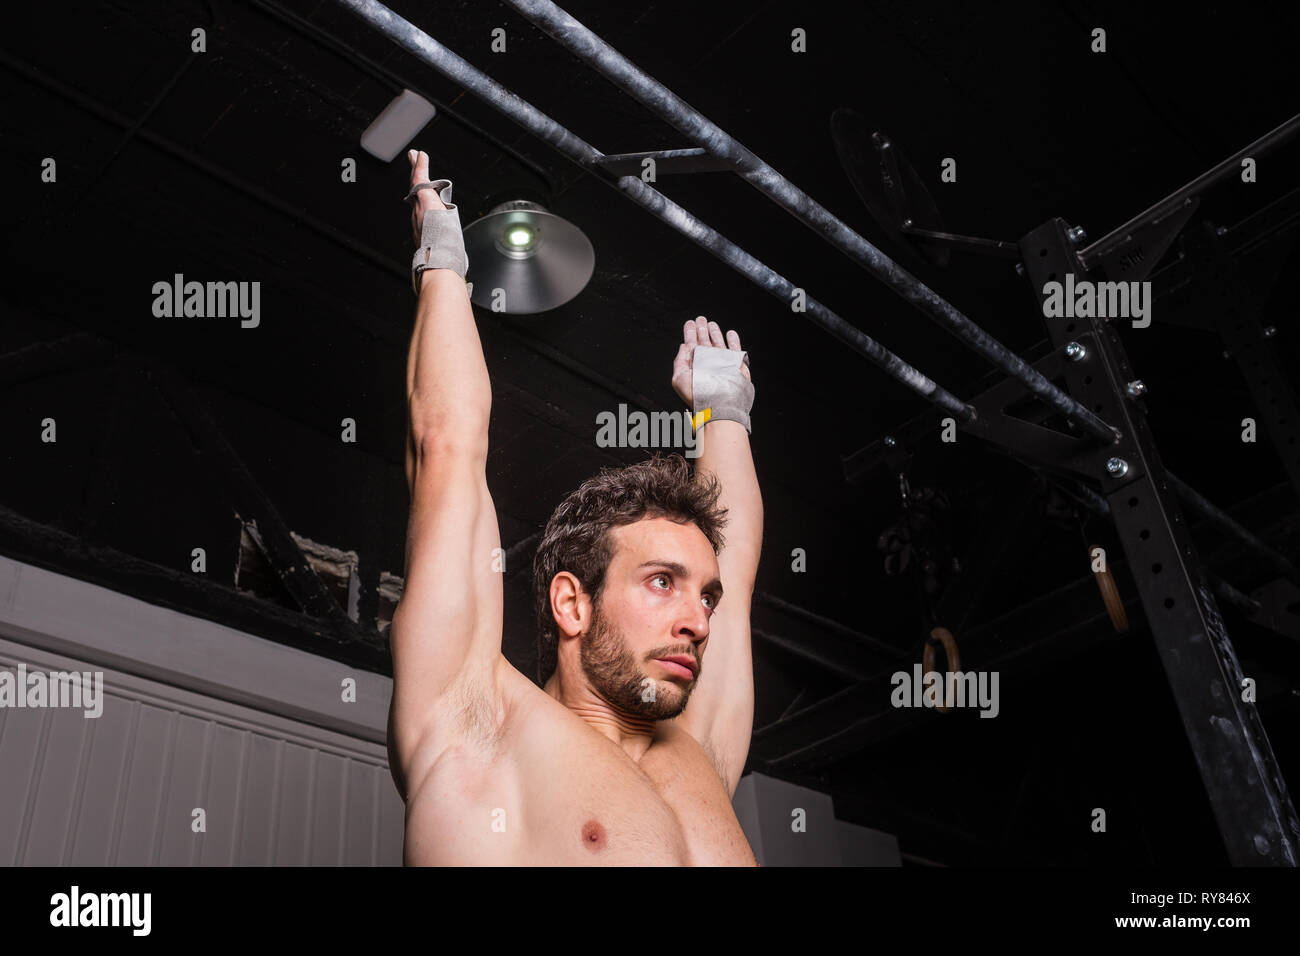 athletic young shirtless guy hanging on bar near wall in gym - Stock Image